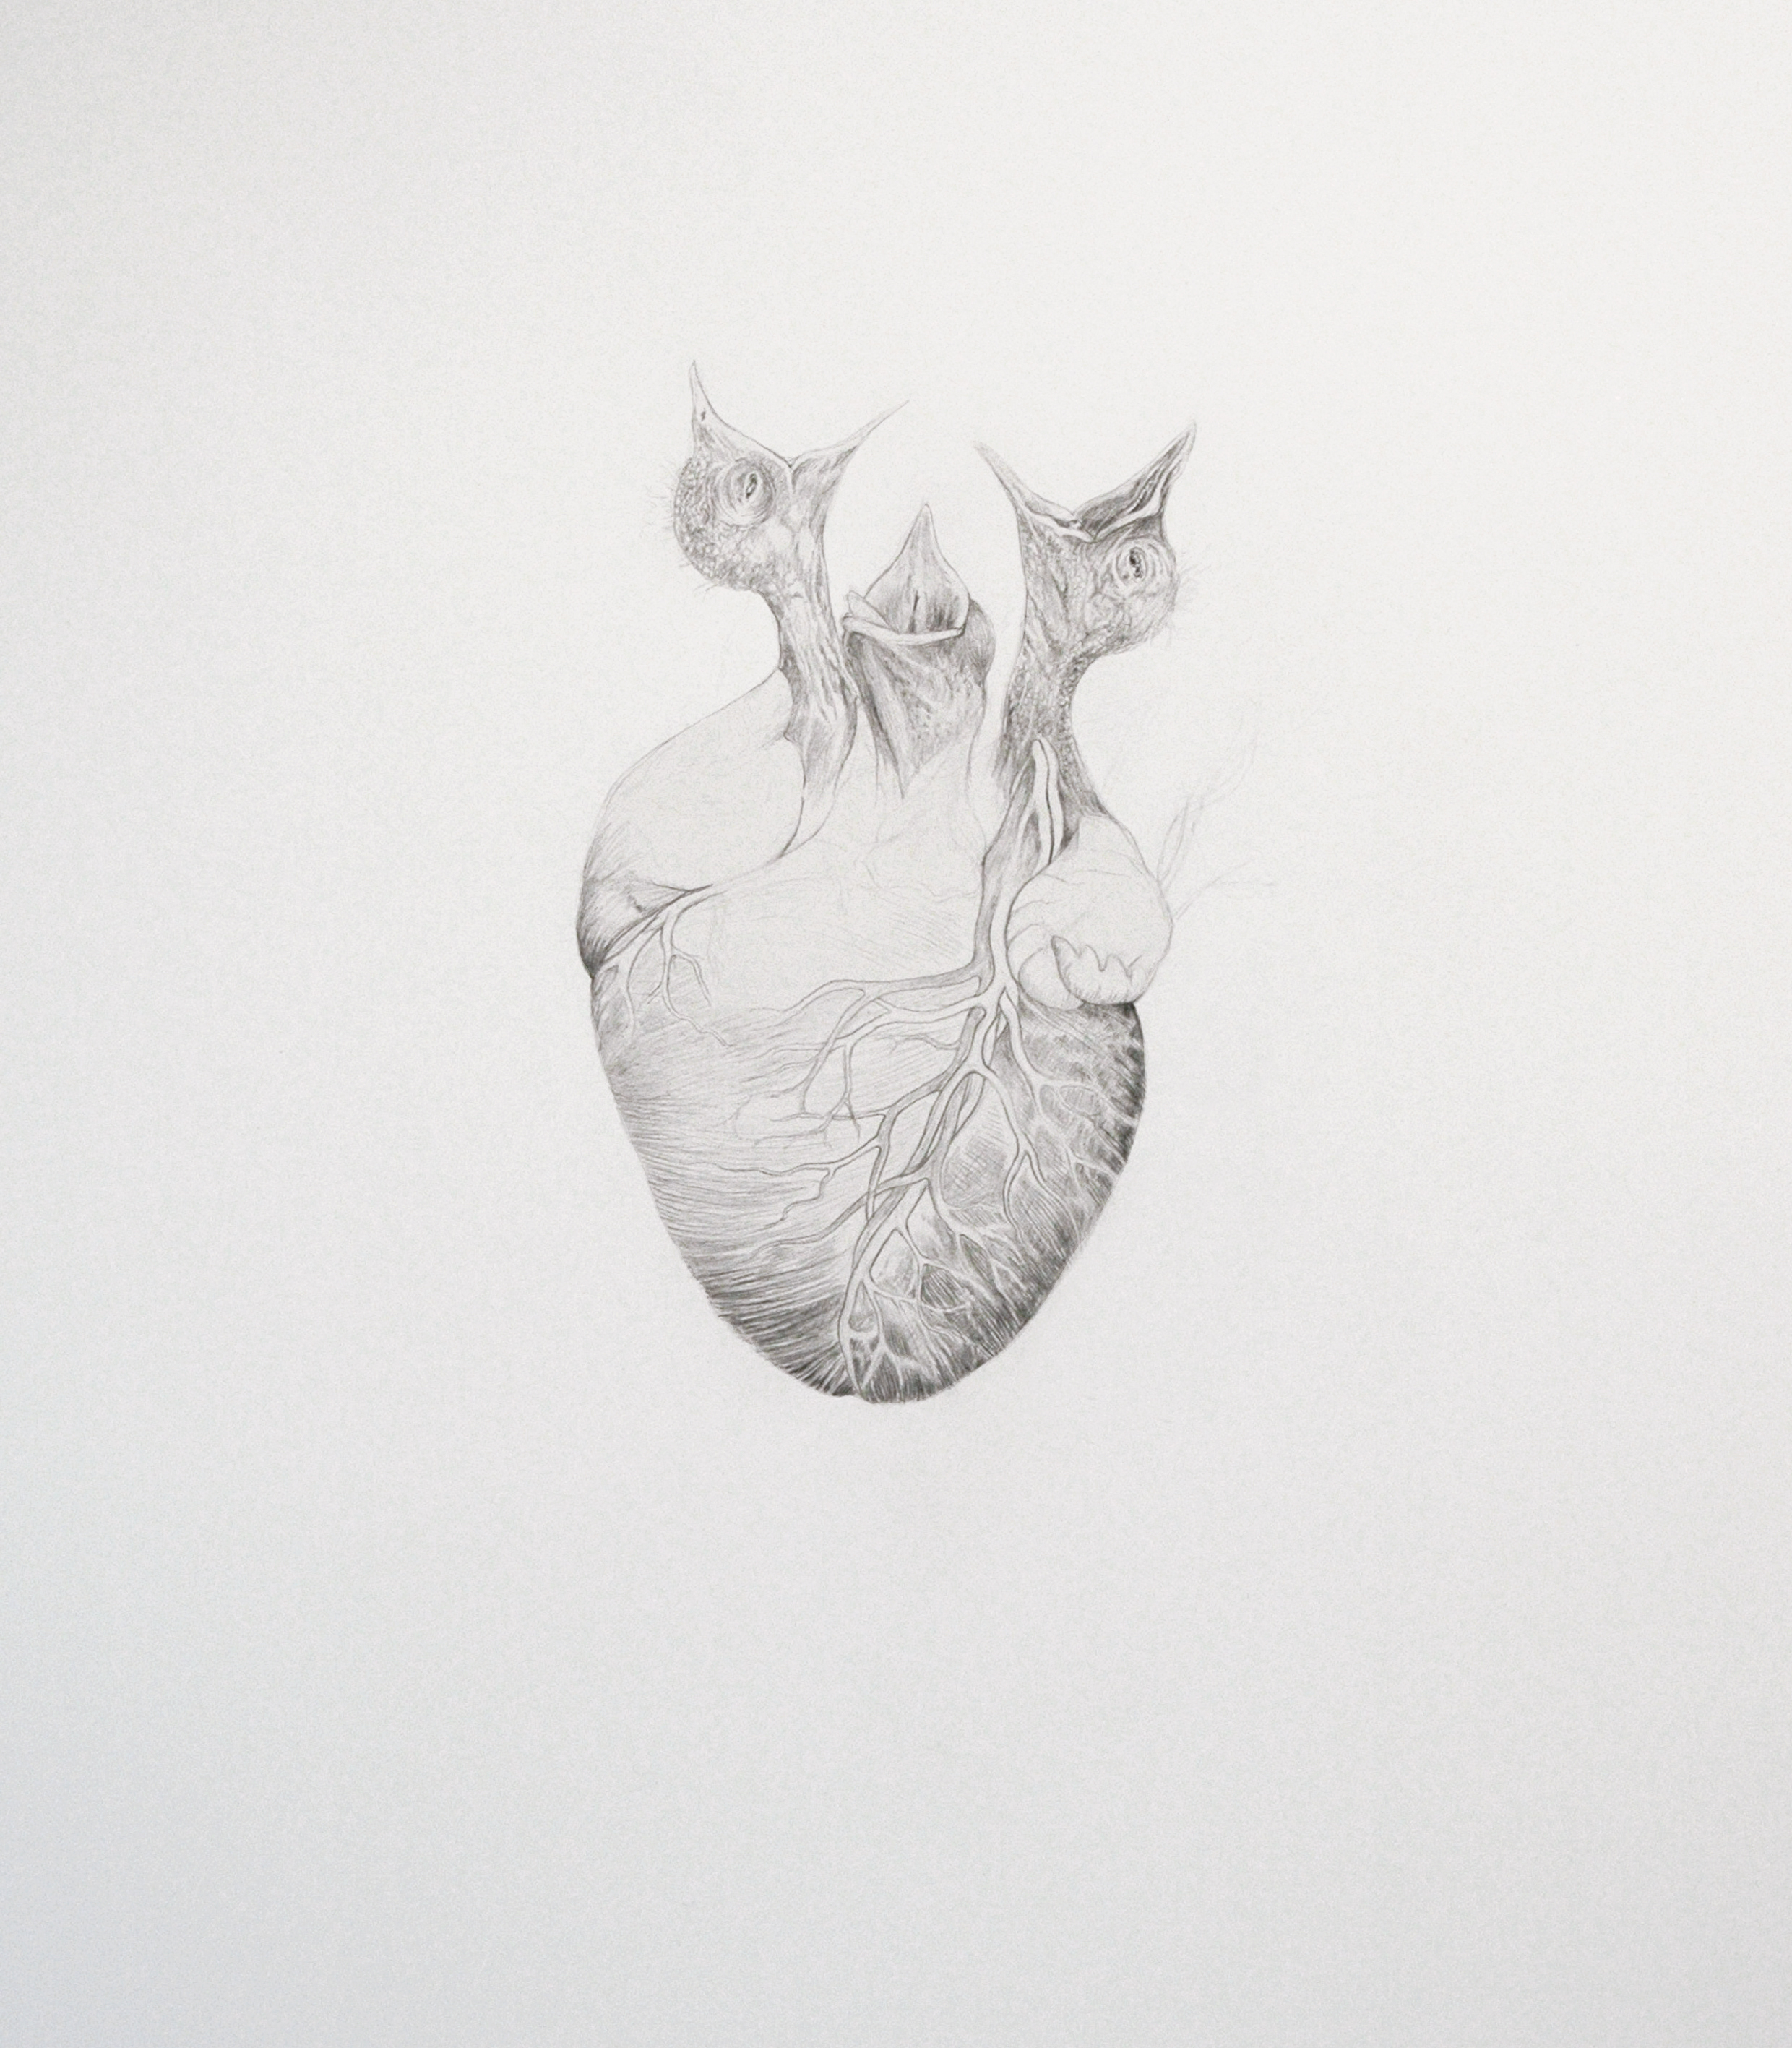 Hunger, graphite on paper, 44 x 33 cm, 2012